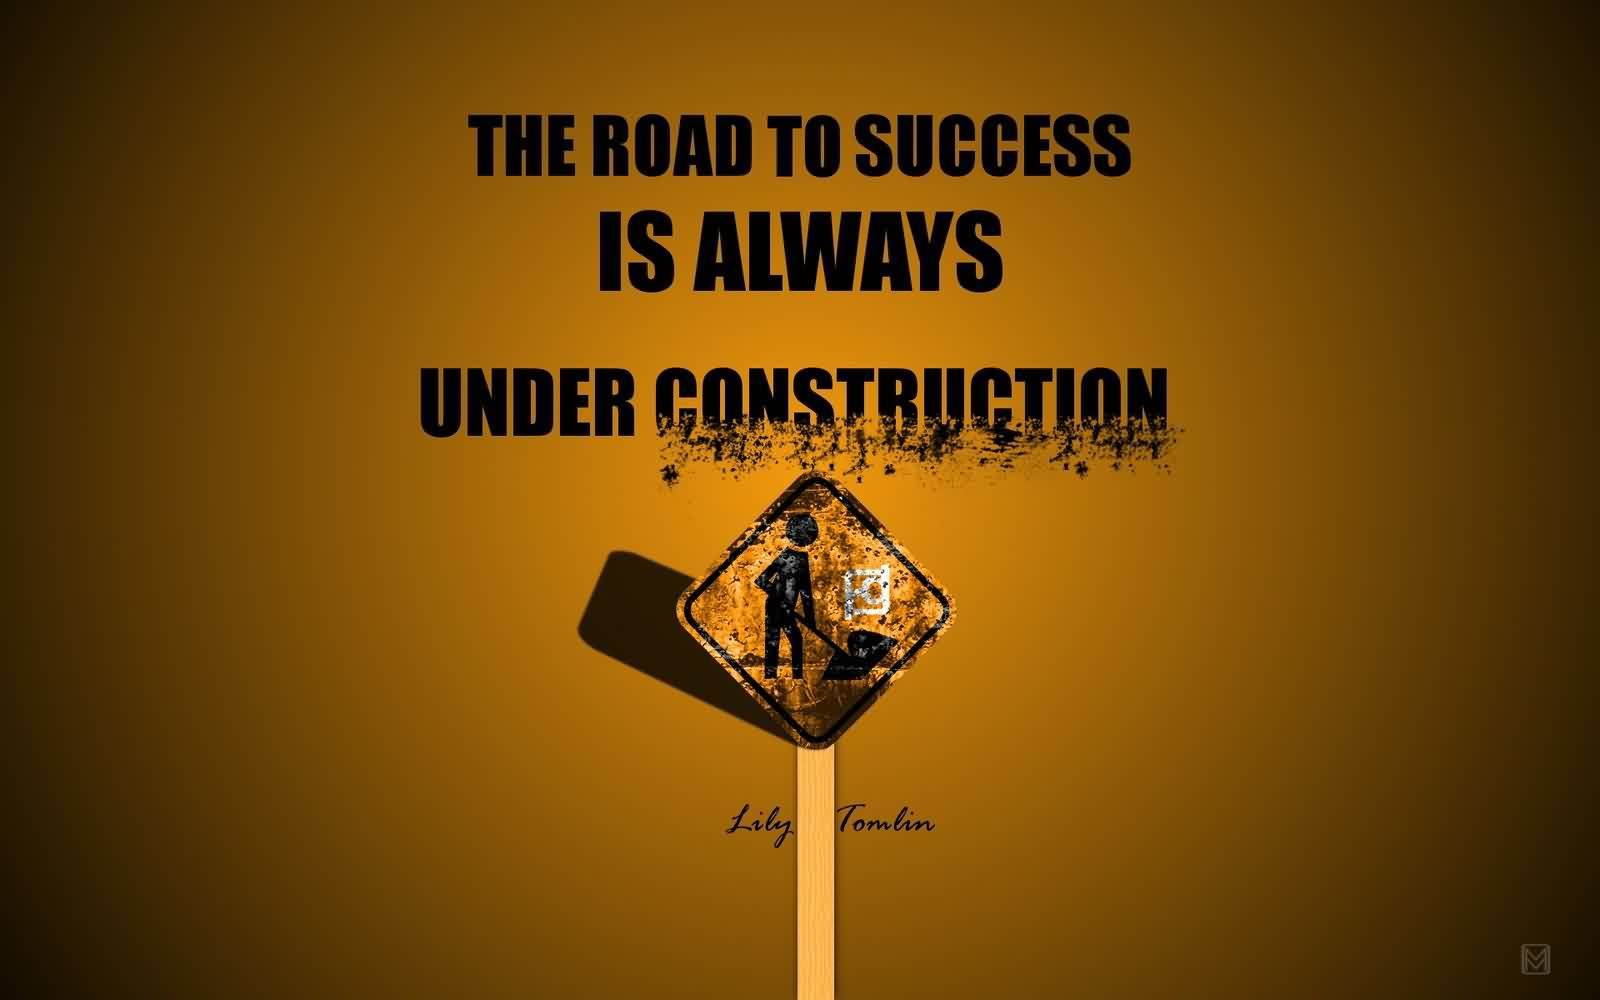 success-road-is-always-under-construction.jpg